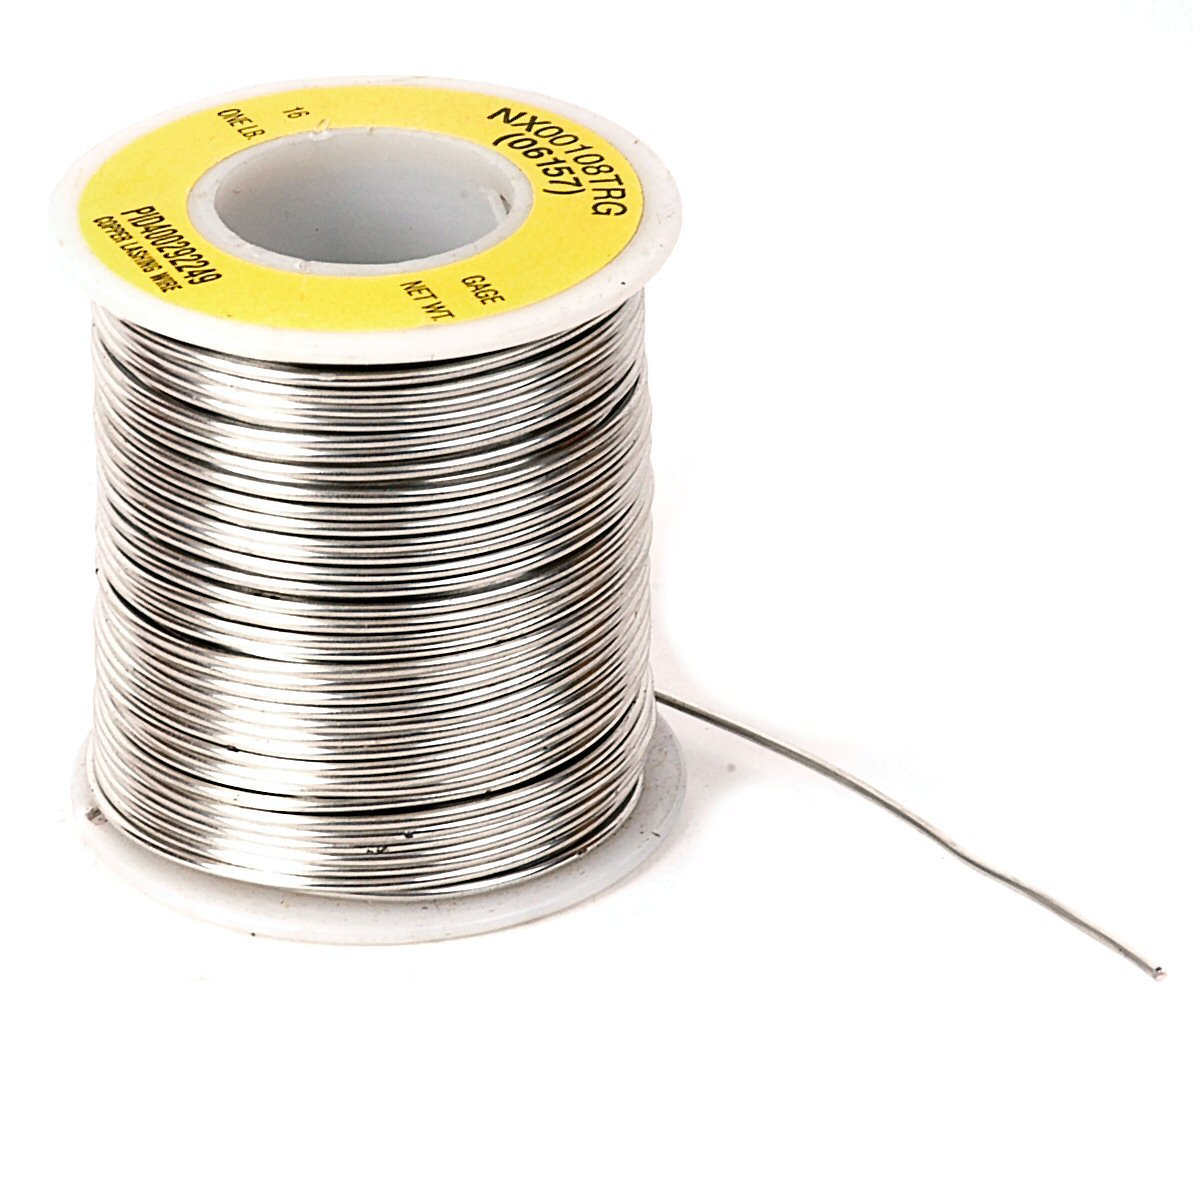 Tinned Lashing Wire 1# Spool - General Machine Products